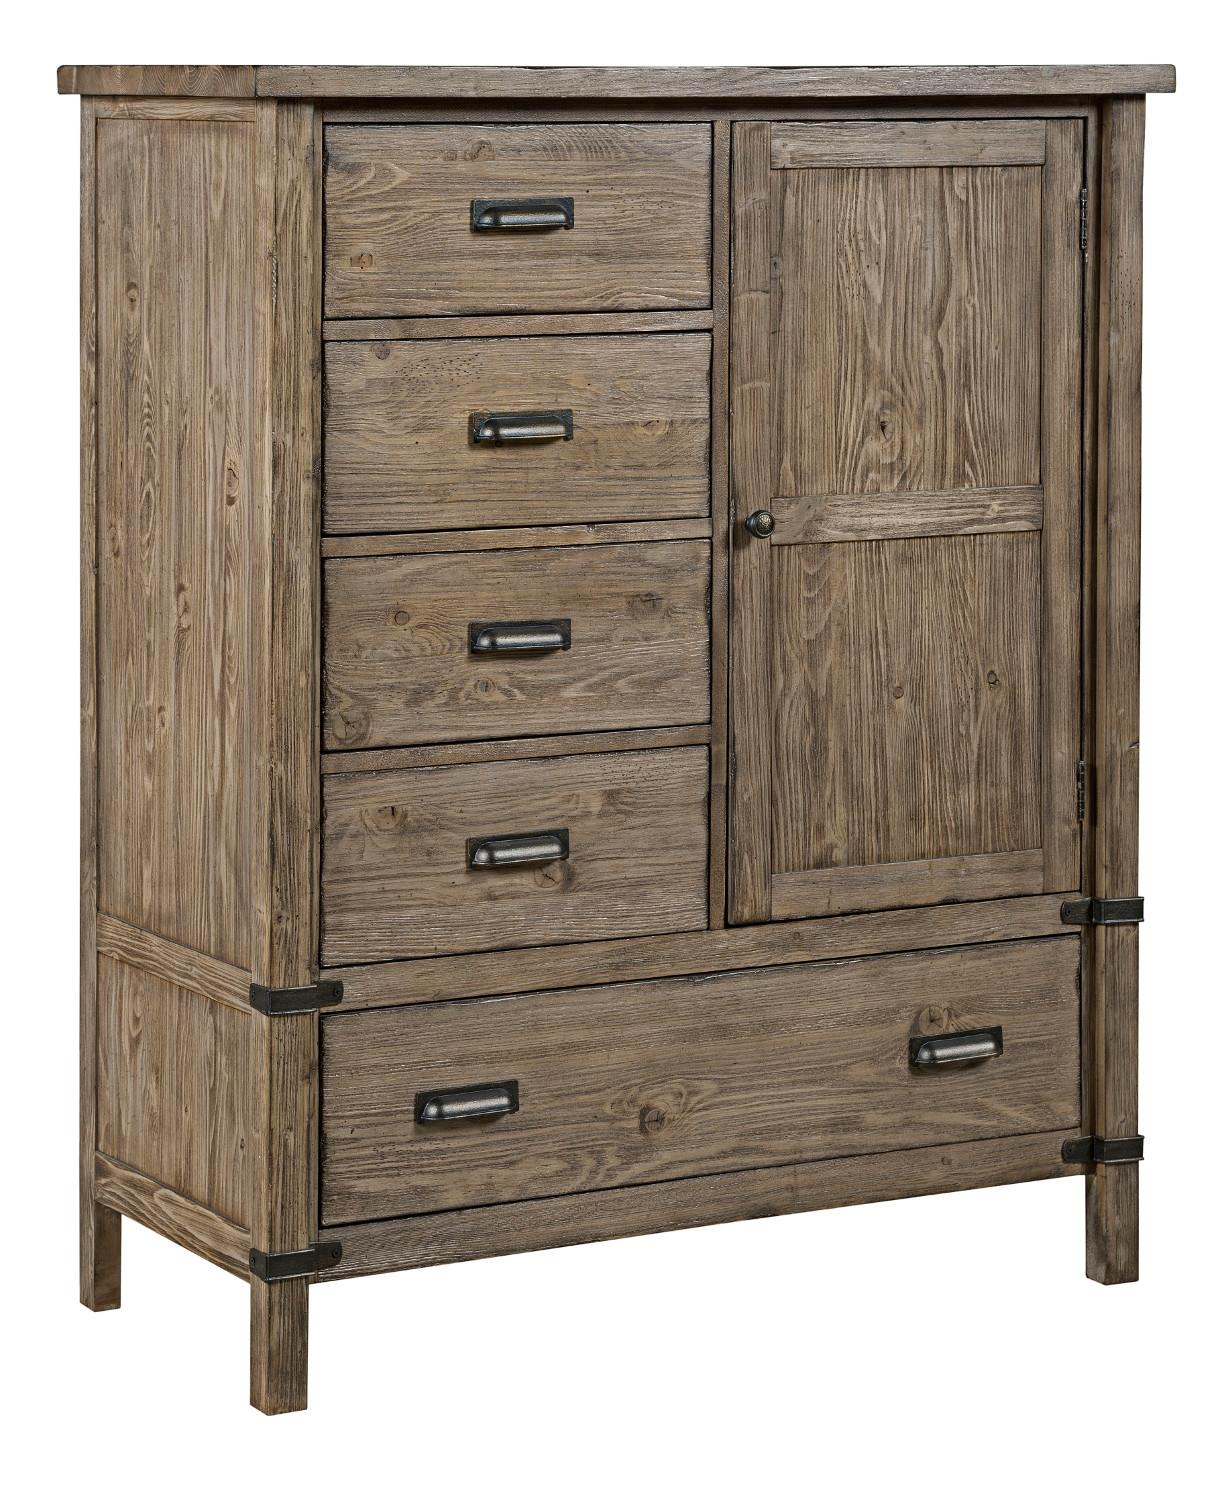 Foundry Door Chest by Kincaid Furniture at Northeast Factory Direct